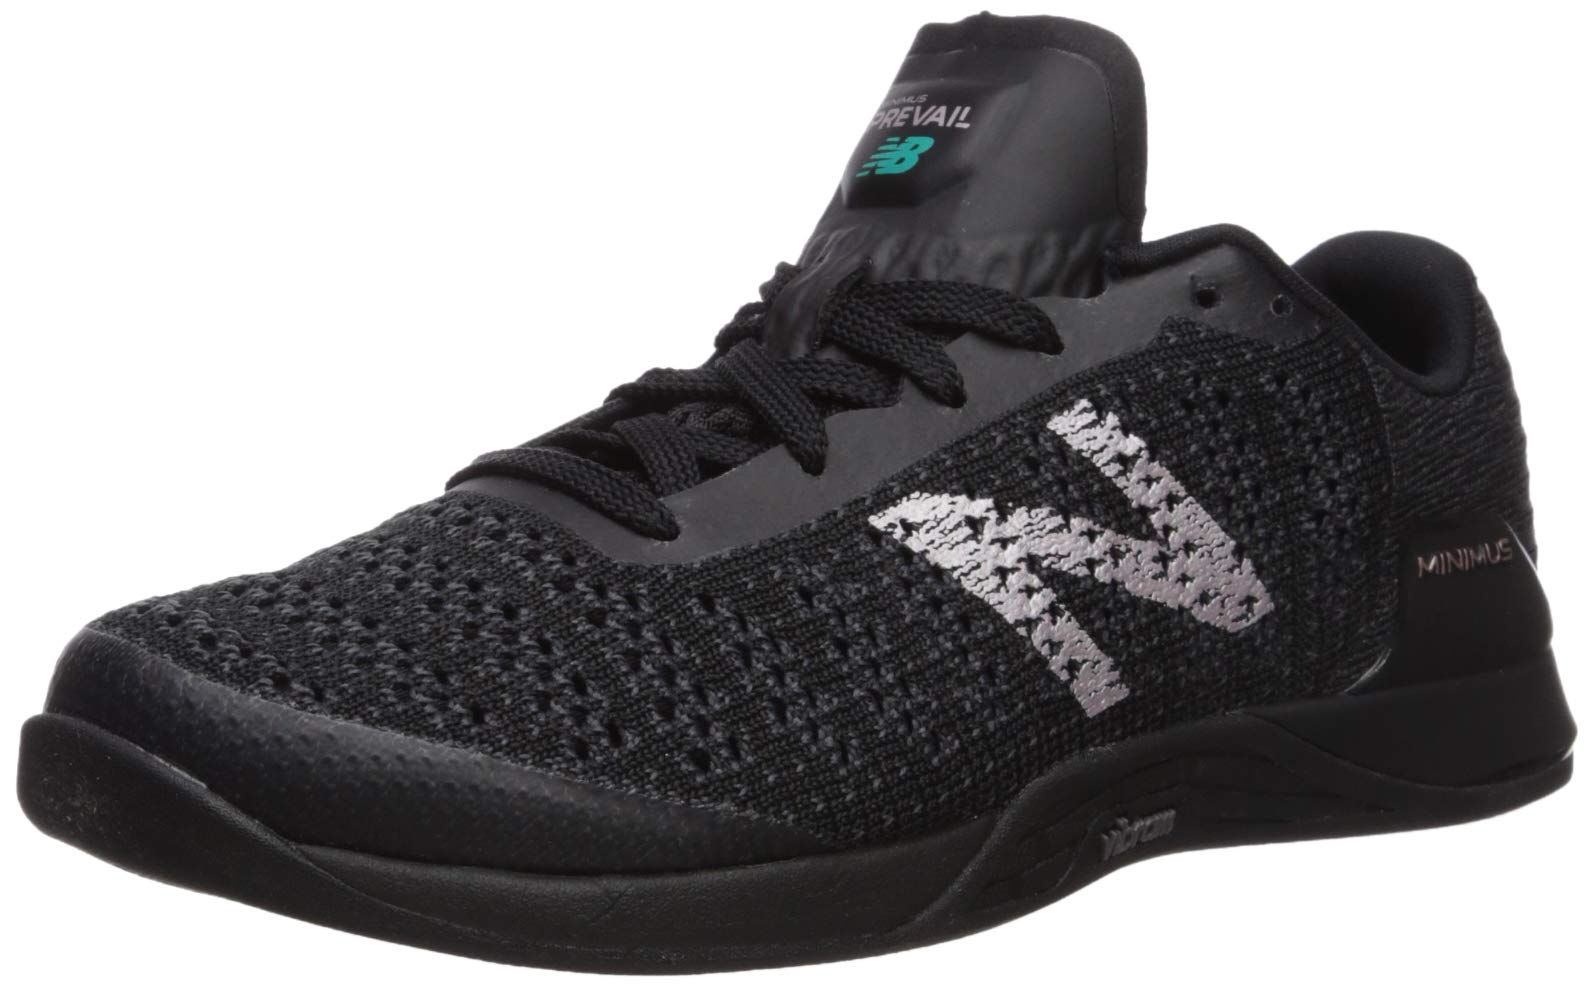 New Balance Women's Prevail V1 Minimus Track and Field Shoe, Black/Magnet, 6 M US by New Balance